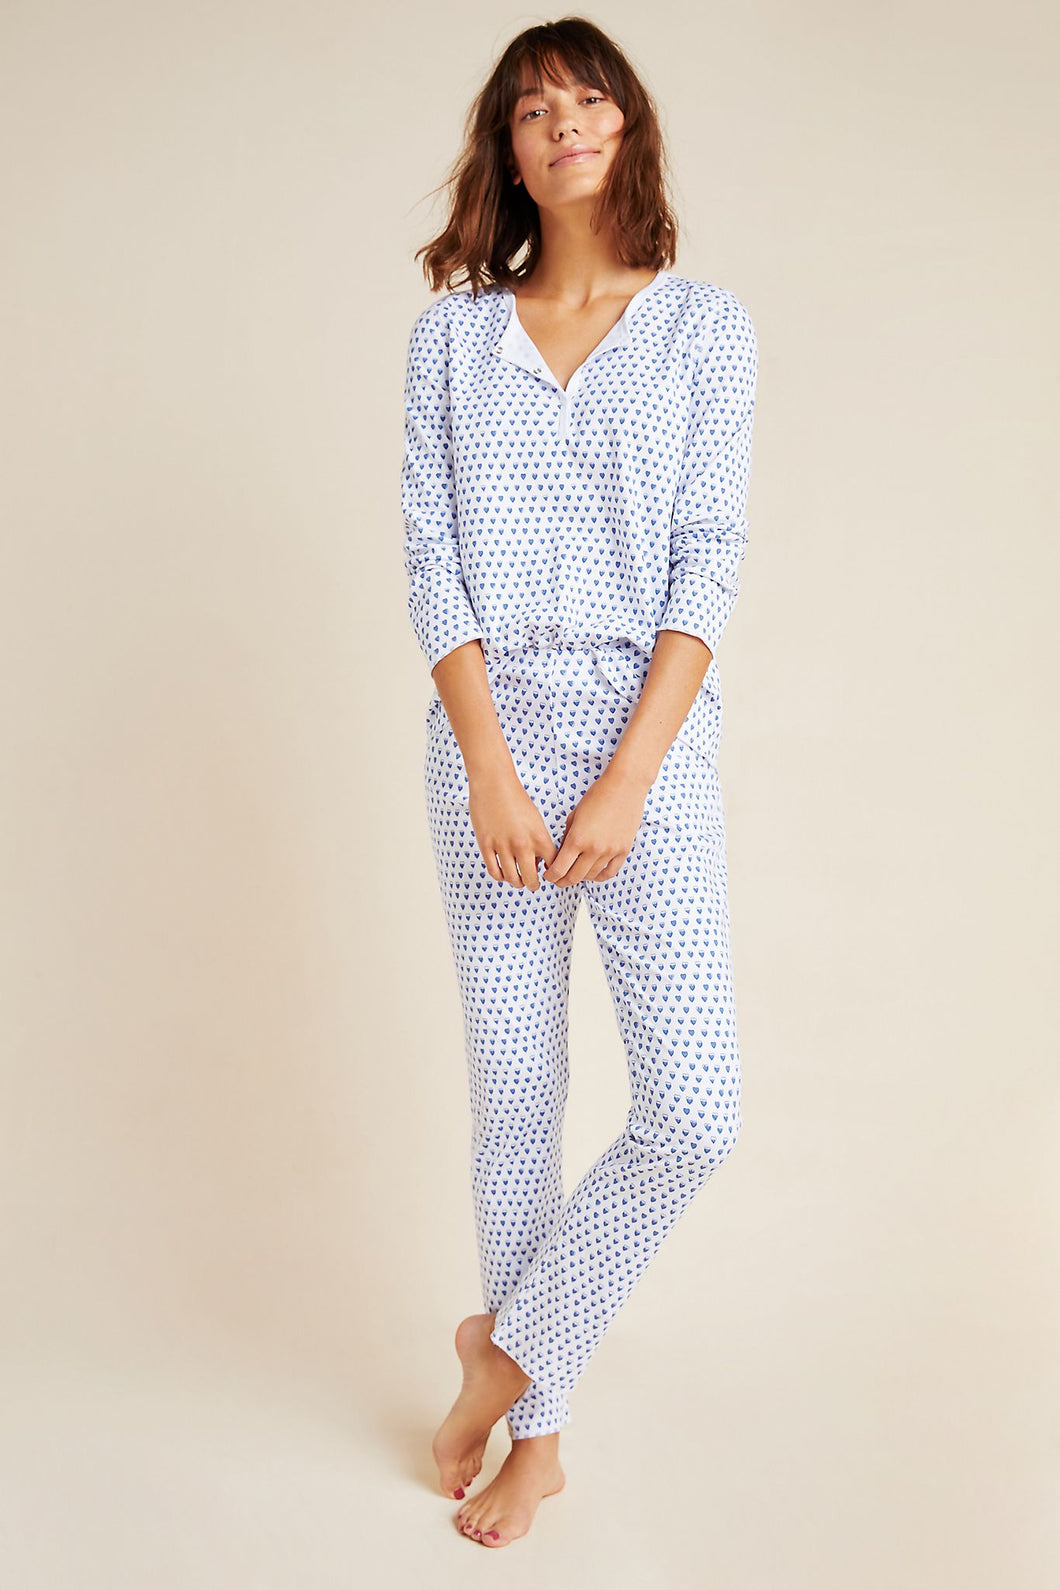 Roller Rabbit Adult Pajamas Blue Hearts